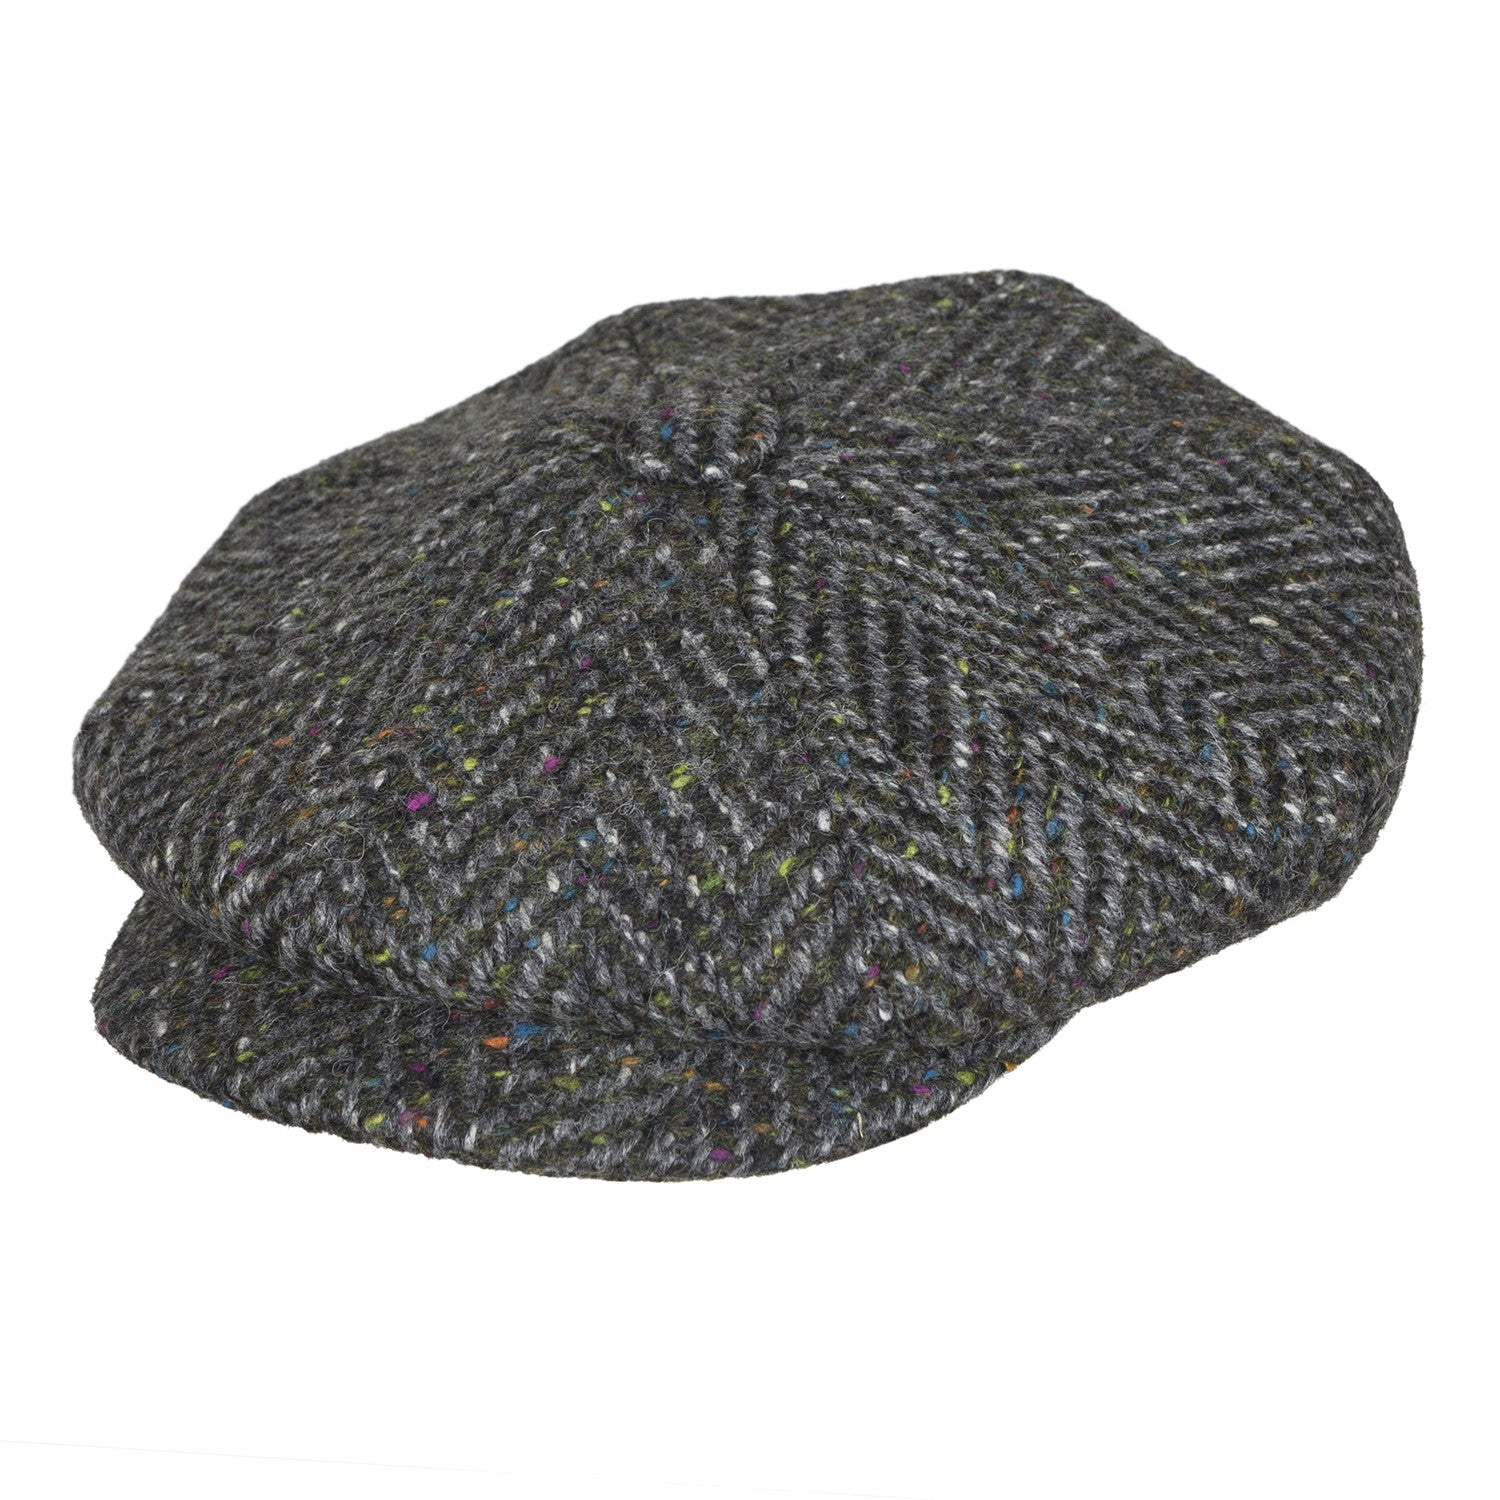 0111f720324f4 City Sport - Donegal Tweed 8 Piece Baker Boy Cap - Charocoal Grey Speckled  3045